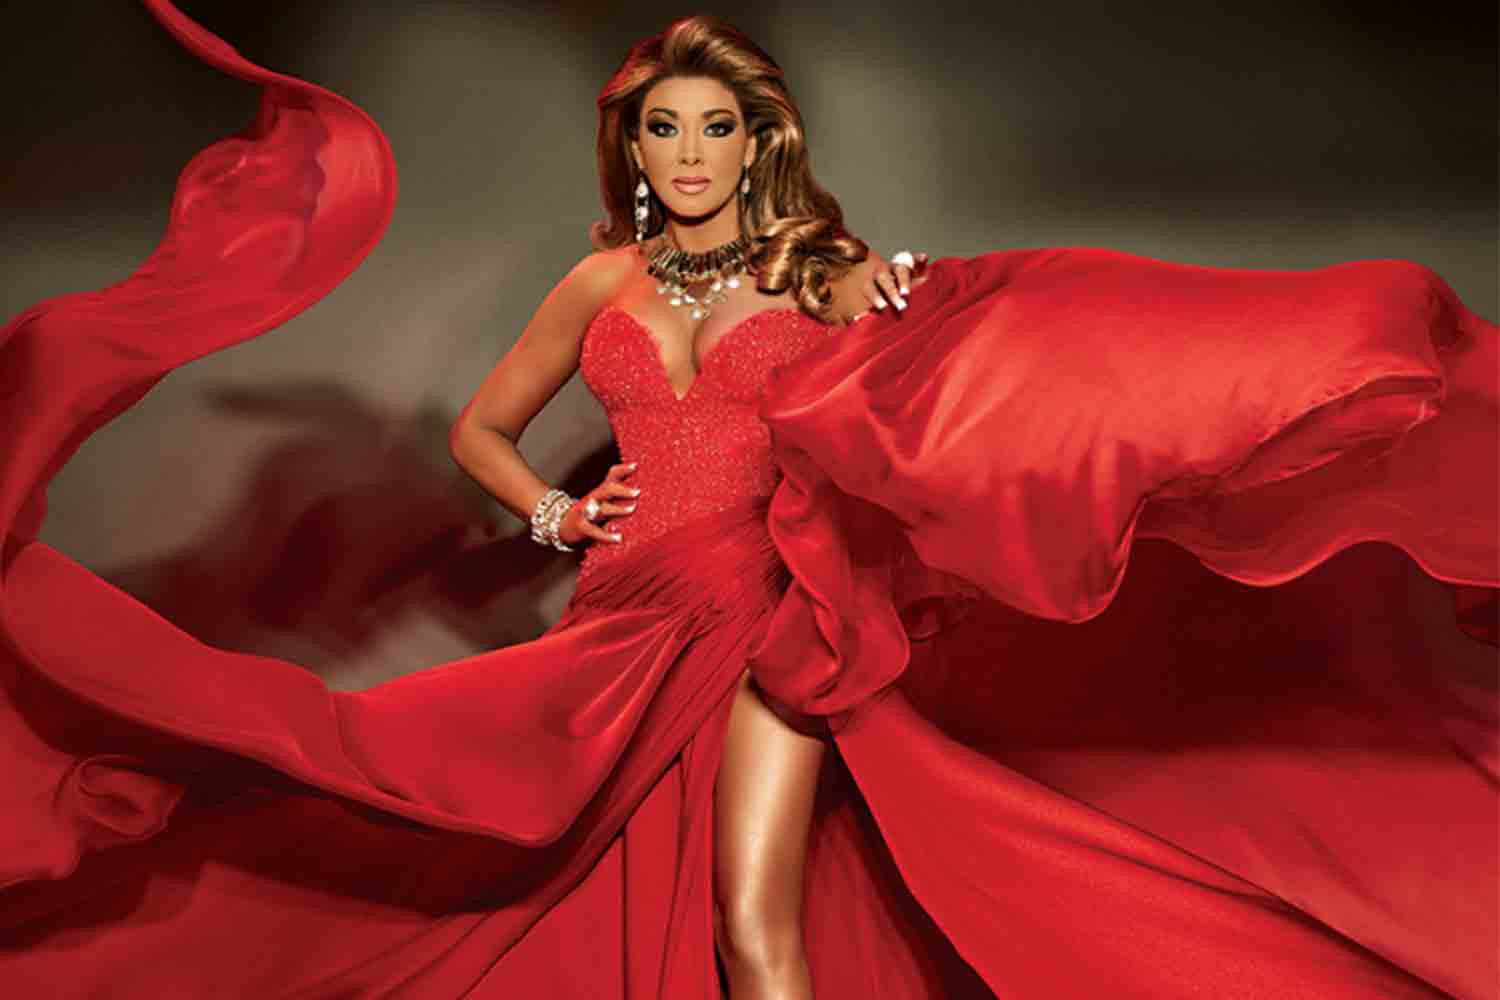 5 minutes with Gina Liano